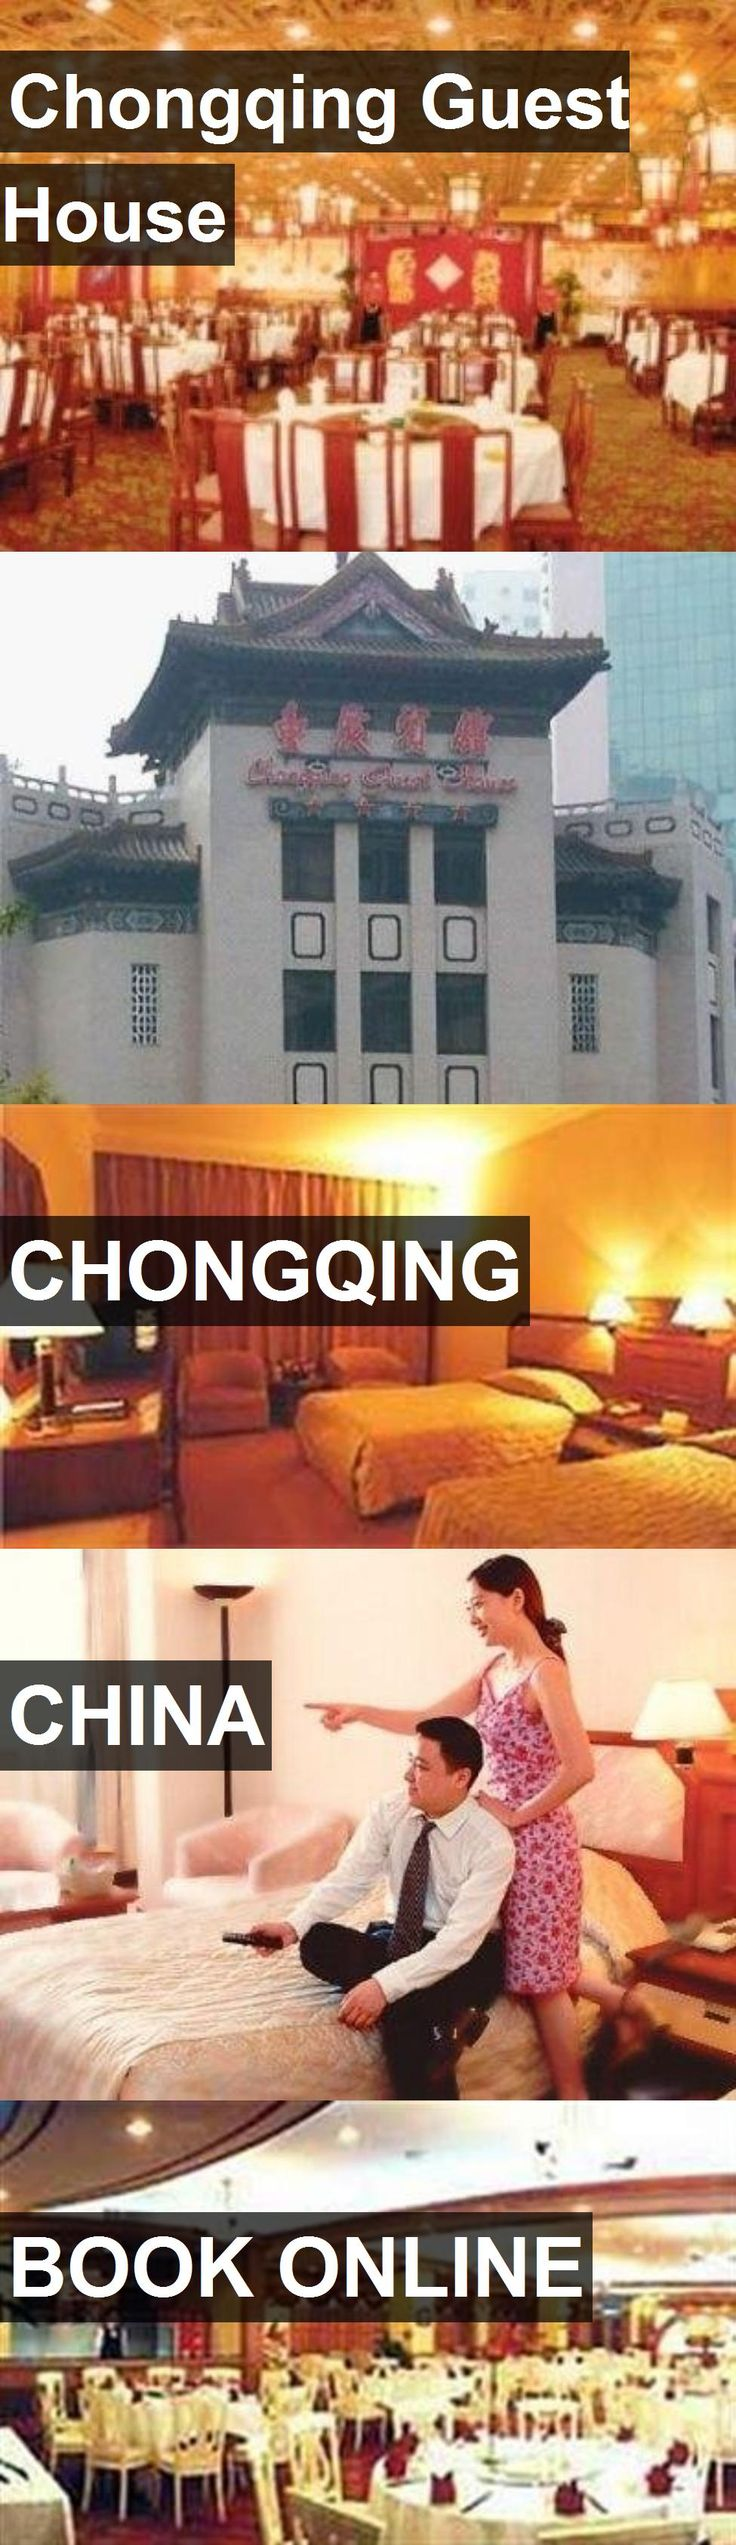 Chongqing Guest House in Chongqing, China. For more information, photos, reviews and best prices please follow the link. #China #Chongqing #travel #vacation #guesthouse